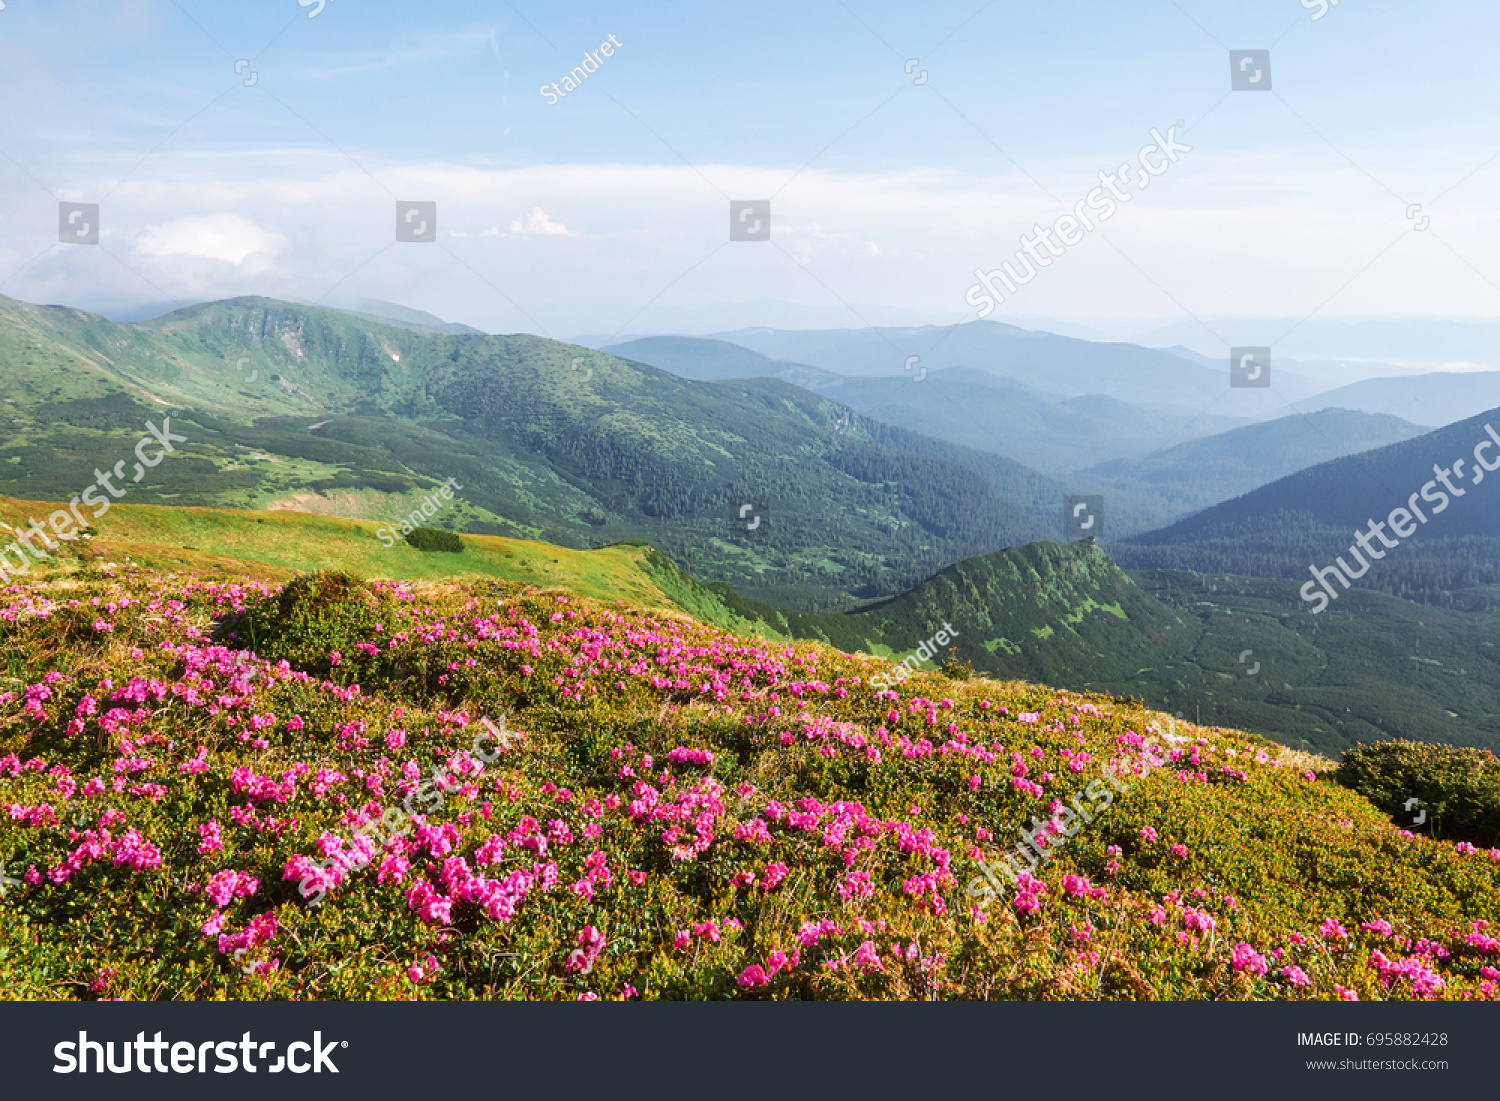 Rhododendrons Bloom In A Beautiful Location In The Mountains